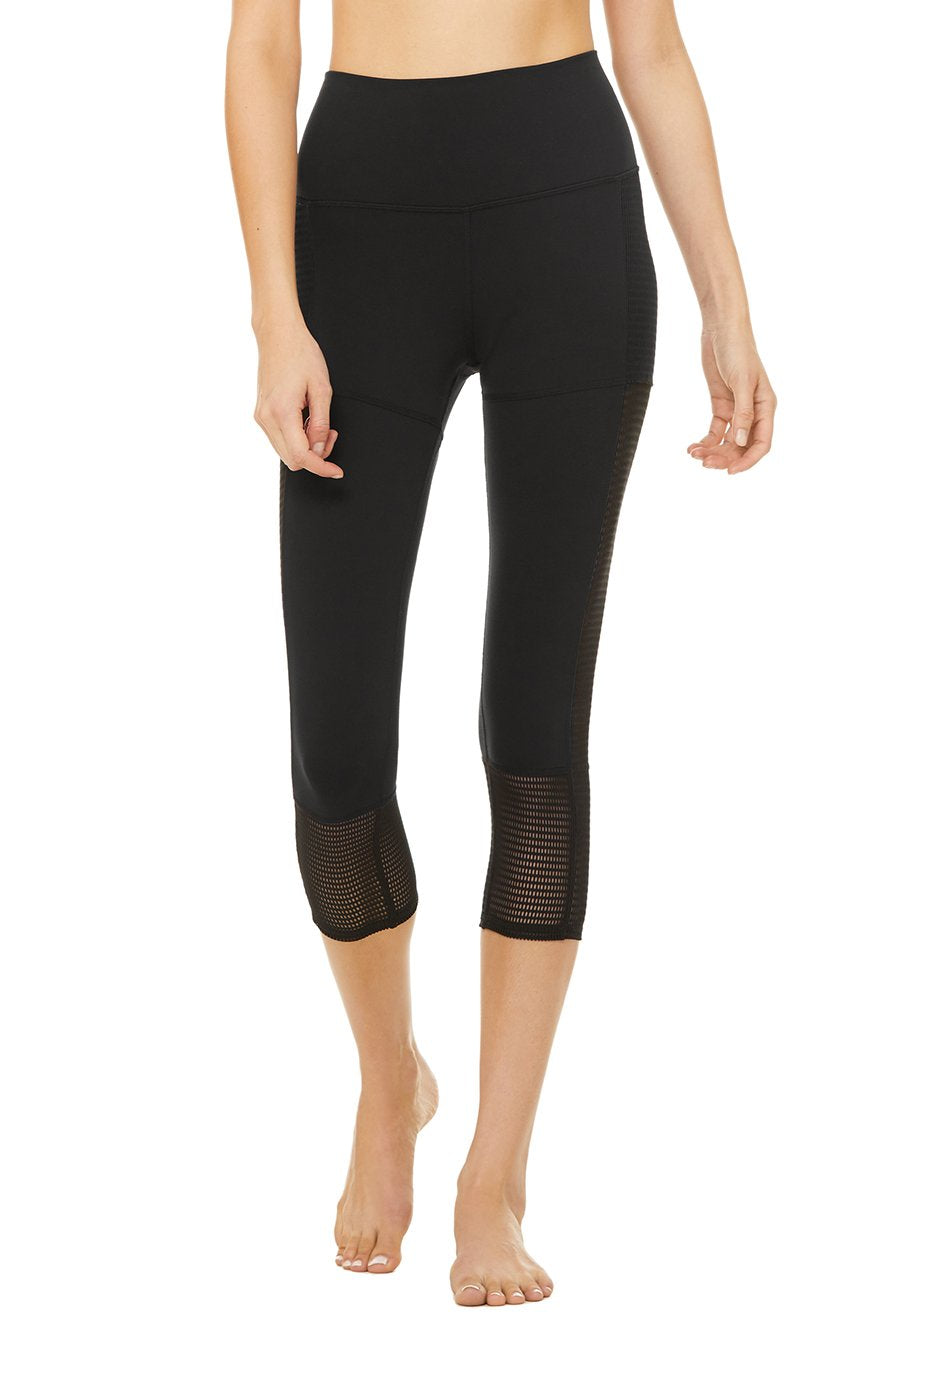 Alo Yoga SMALL Off The Grid Capri - Black